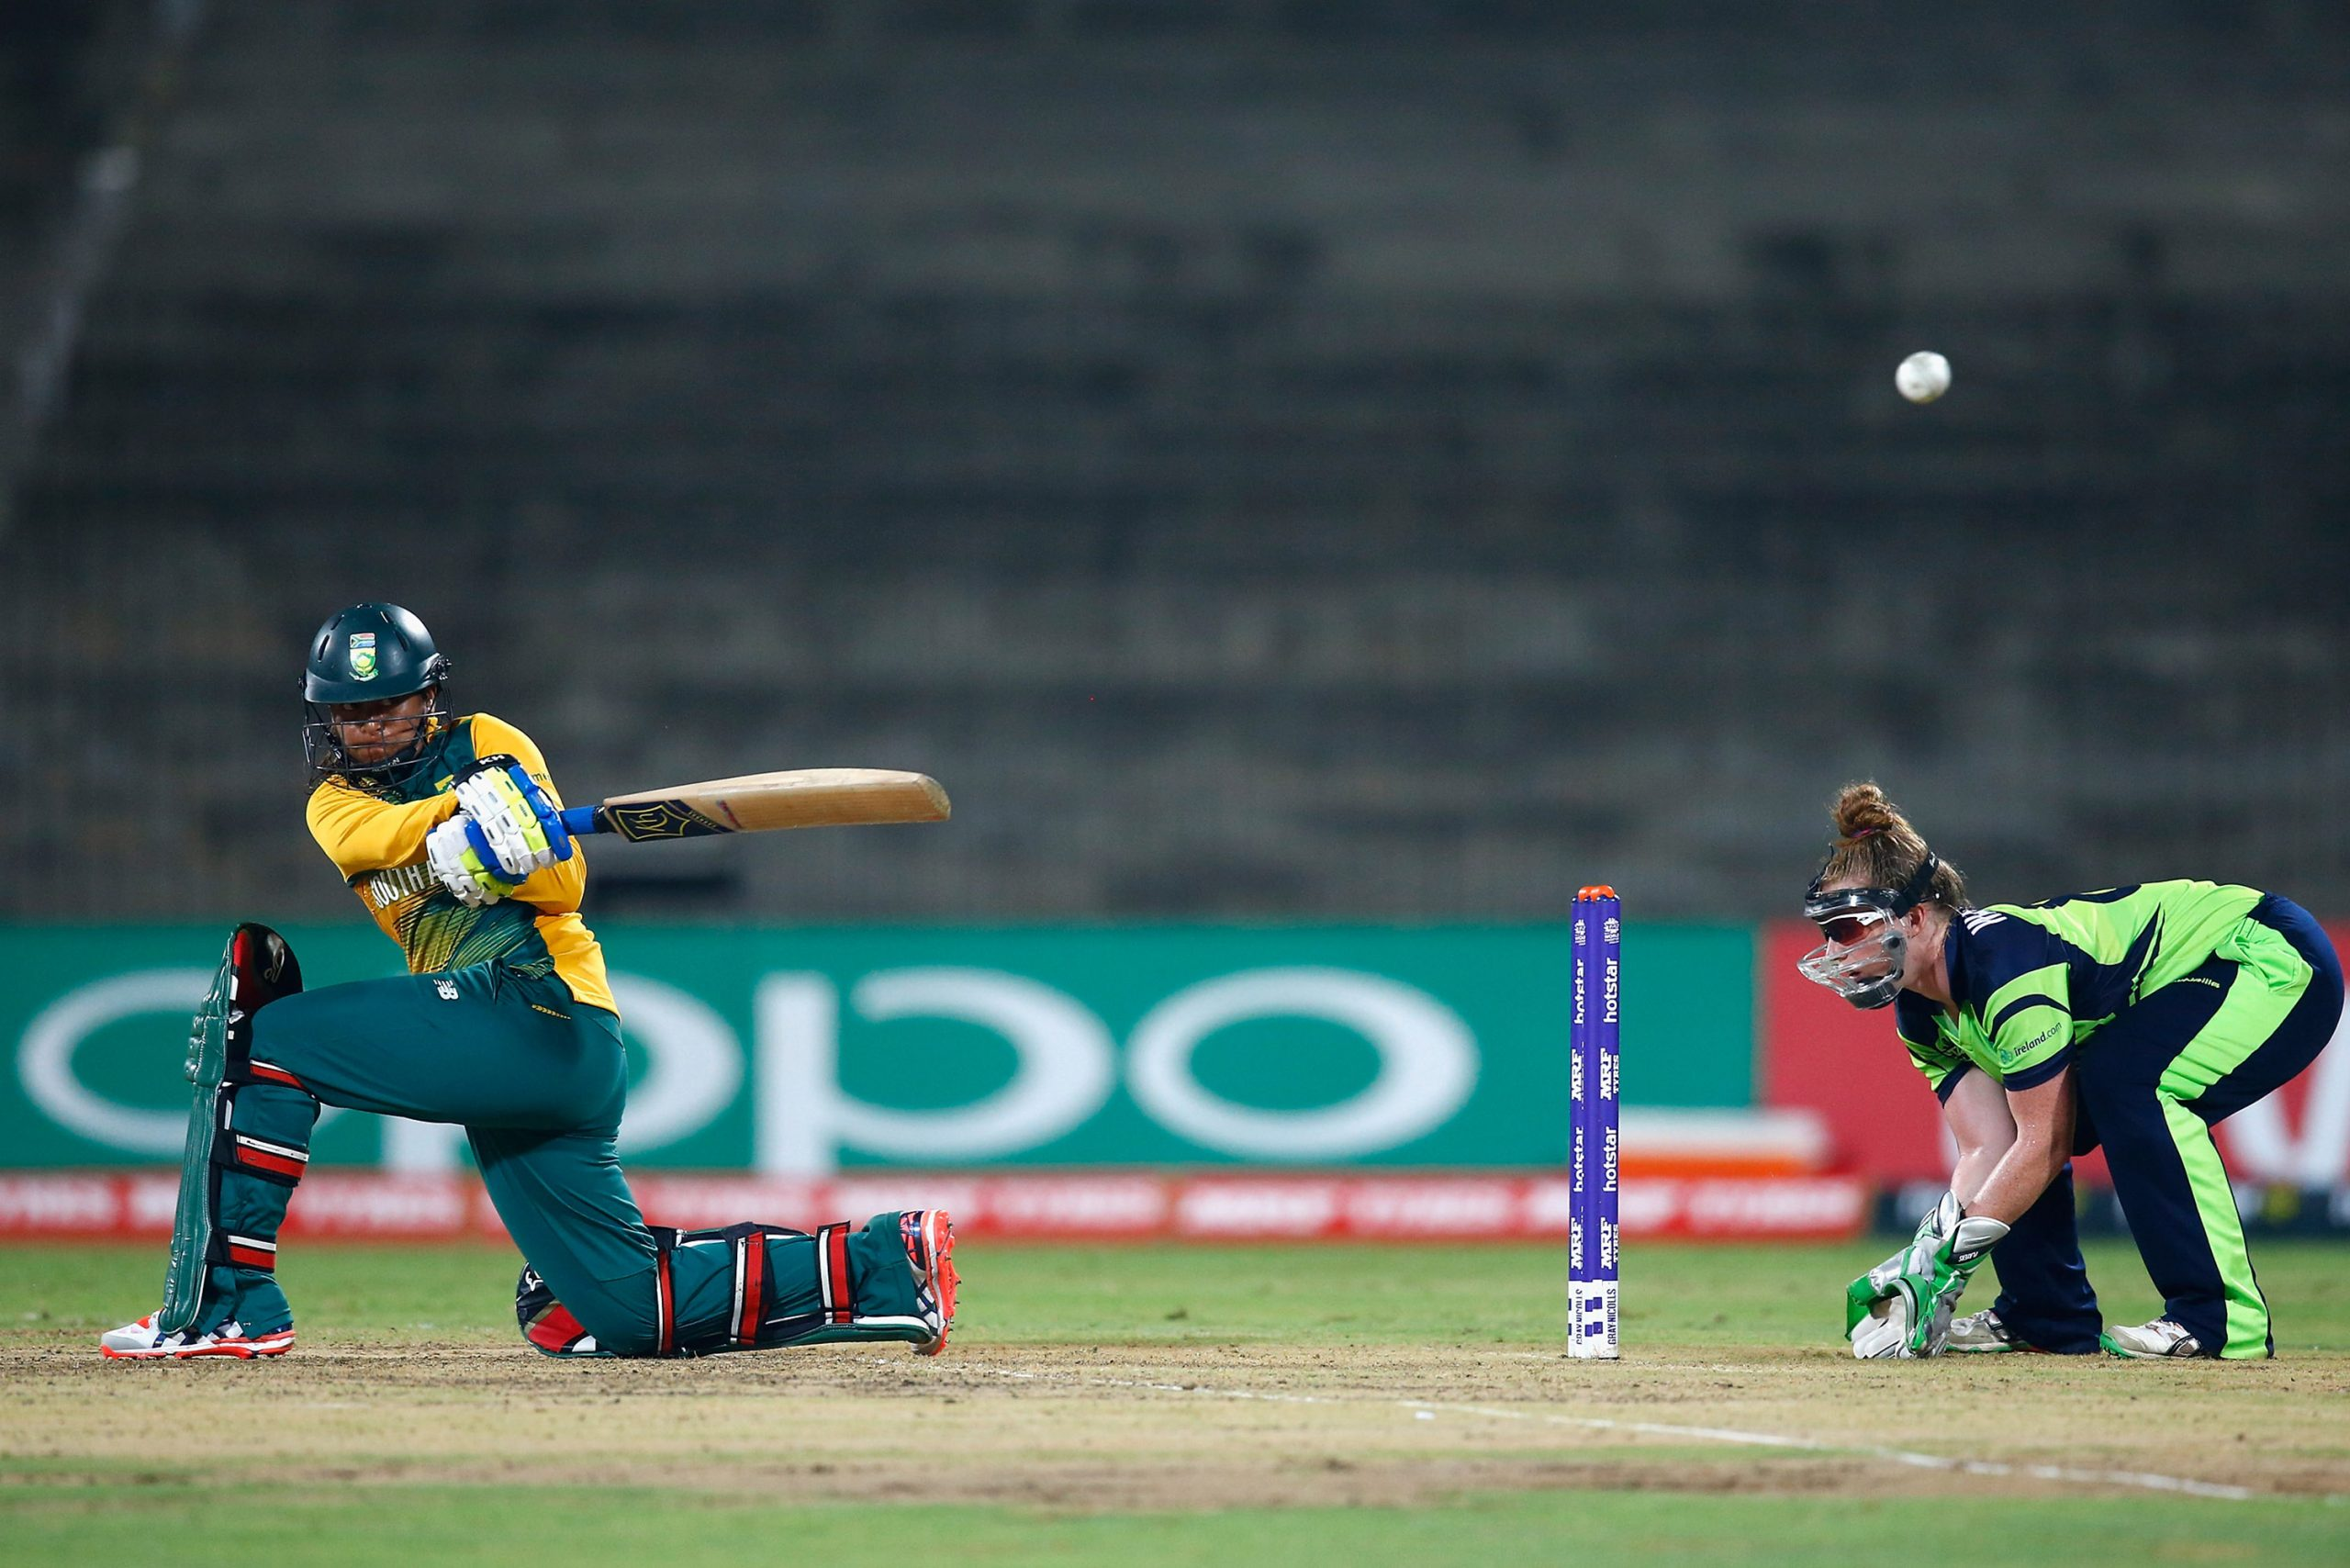 23 March 2016: Dinesha Devnarain sweeps powerfully against Ireland during the ICC Women's T20 World Cup in India. Initially a bowler, she taught herself to bat and made it into the top order, becoming an international allrounder. (Photograph by Christopher Lee-ICC/ ICC via Getty Images)